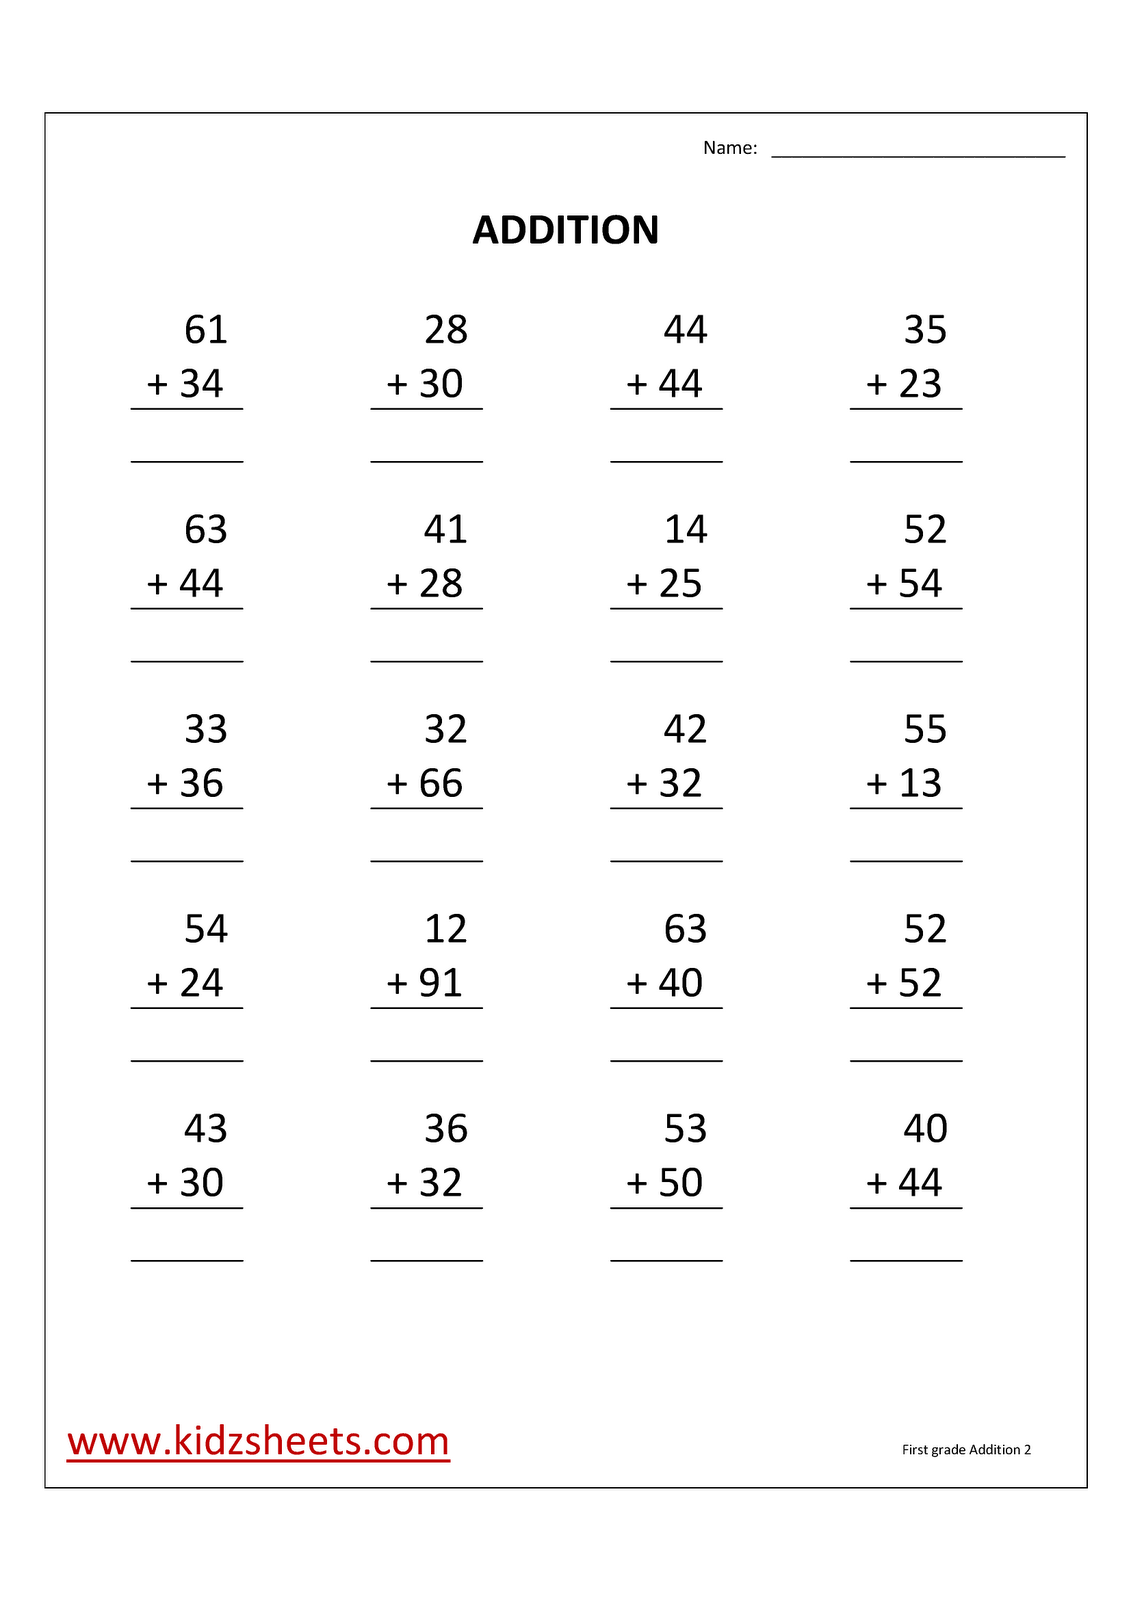 Math Worksheets For 1St Grade Addition And Subtraction – Math Worksheets for First Grade Addition and Subtraction